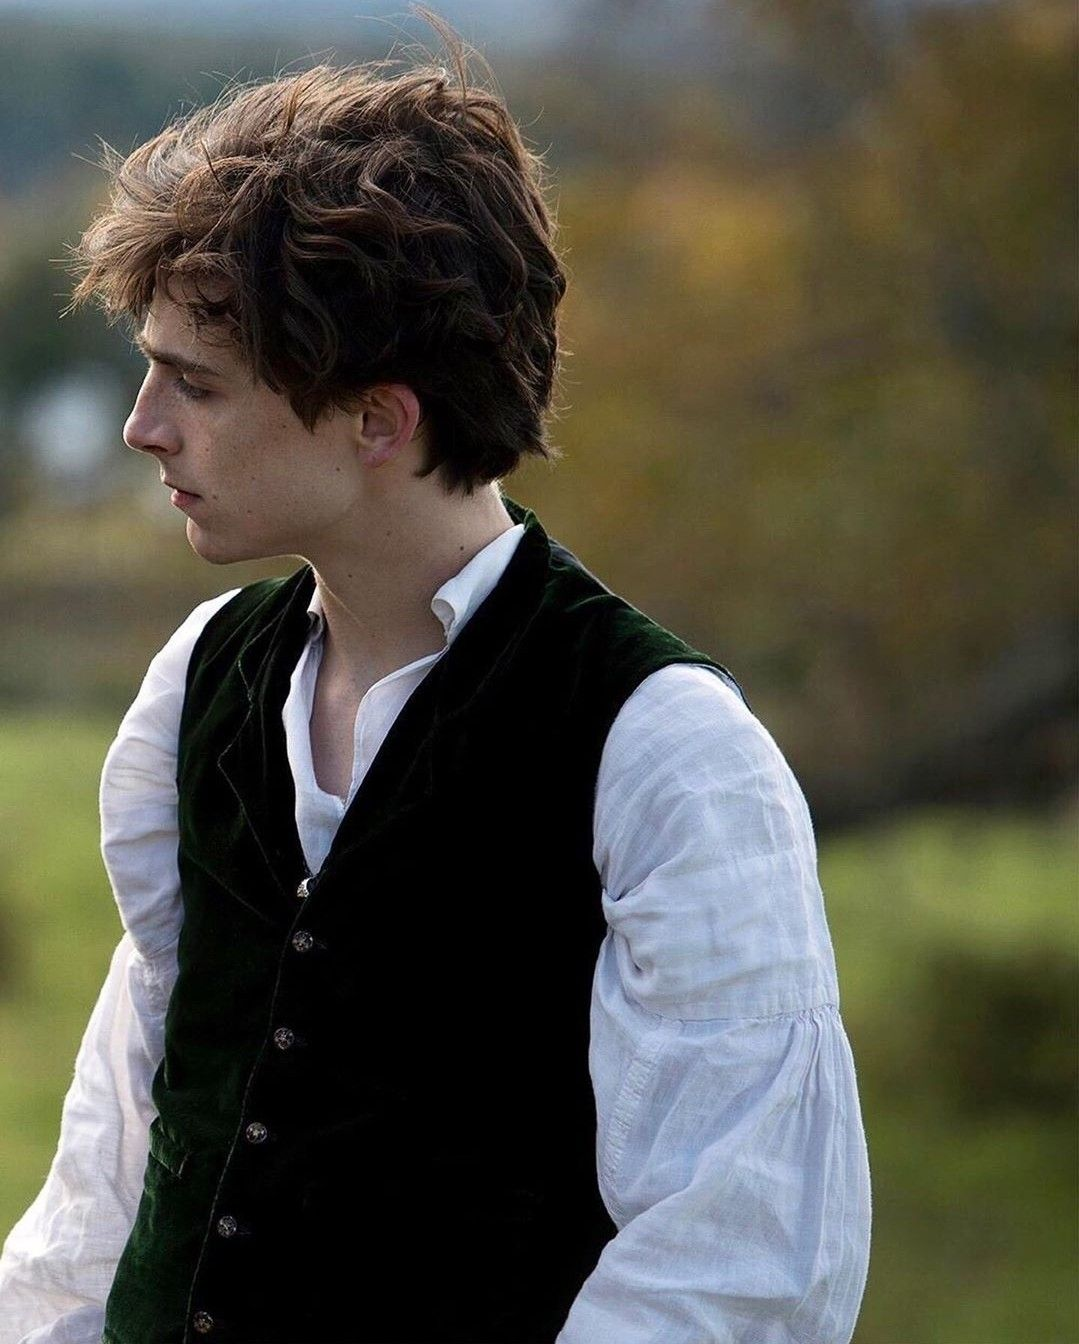 Laurie do Timothee Chalamet thủ vai trong Little Women